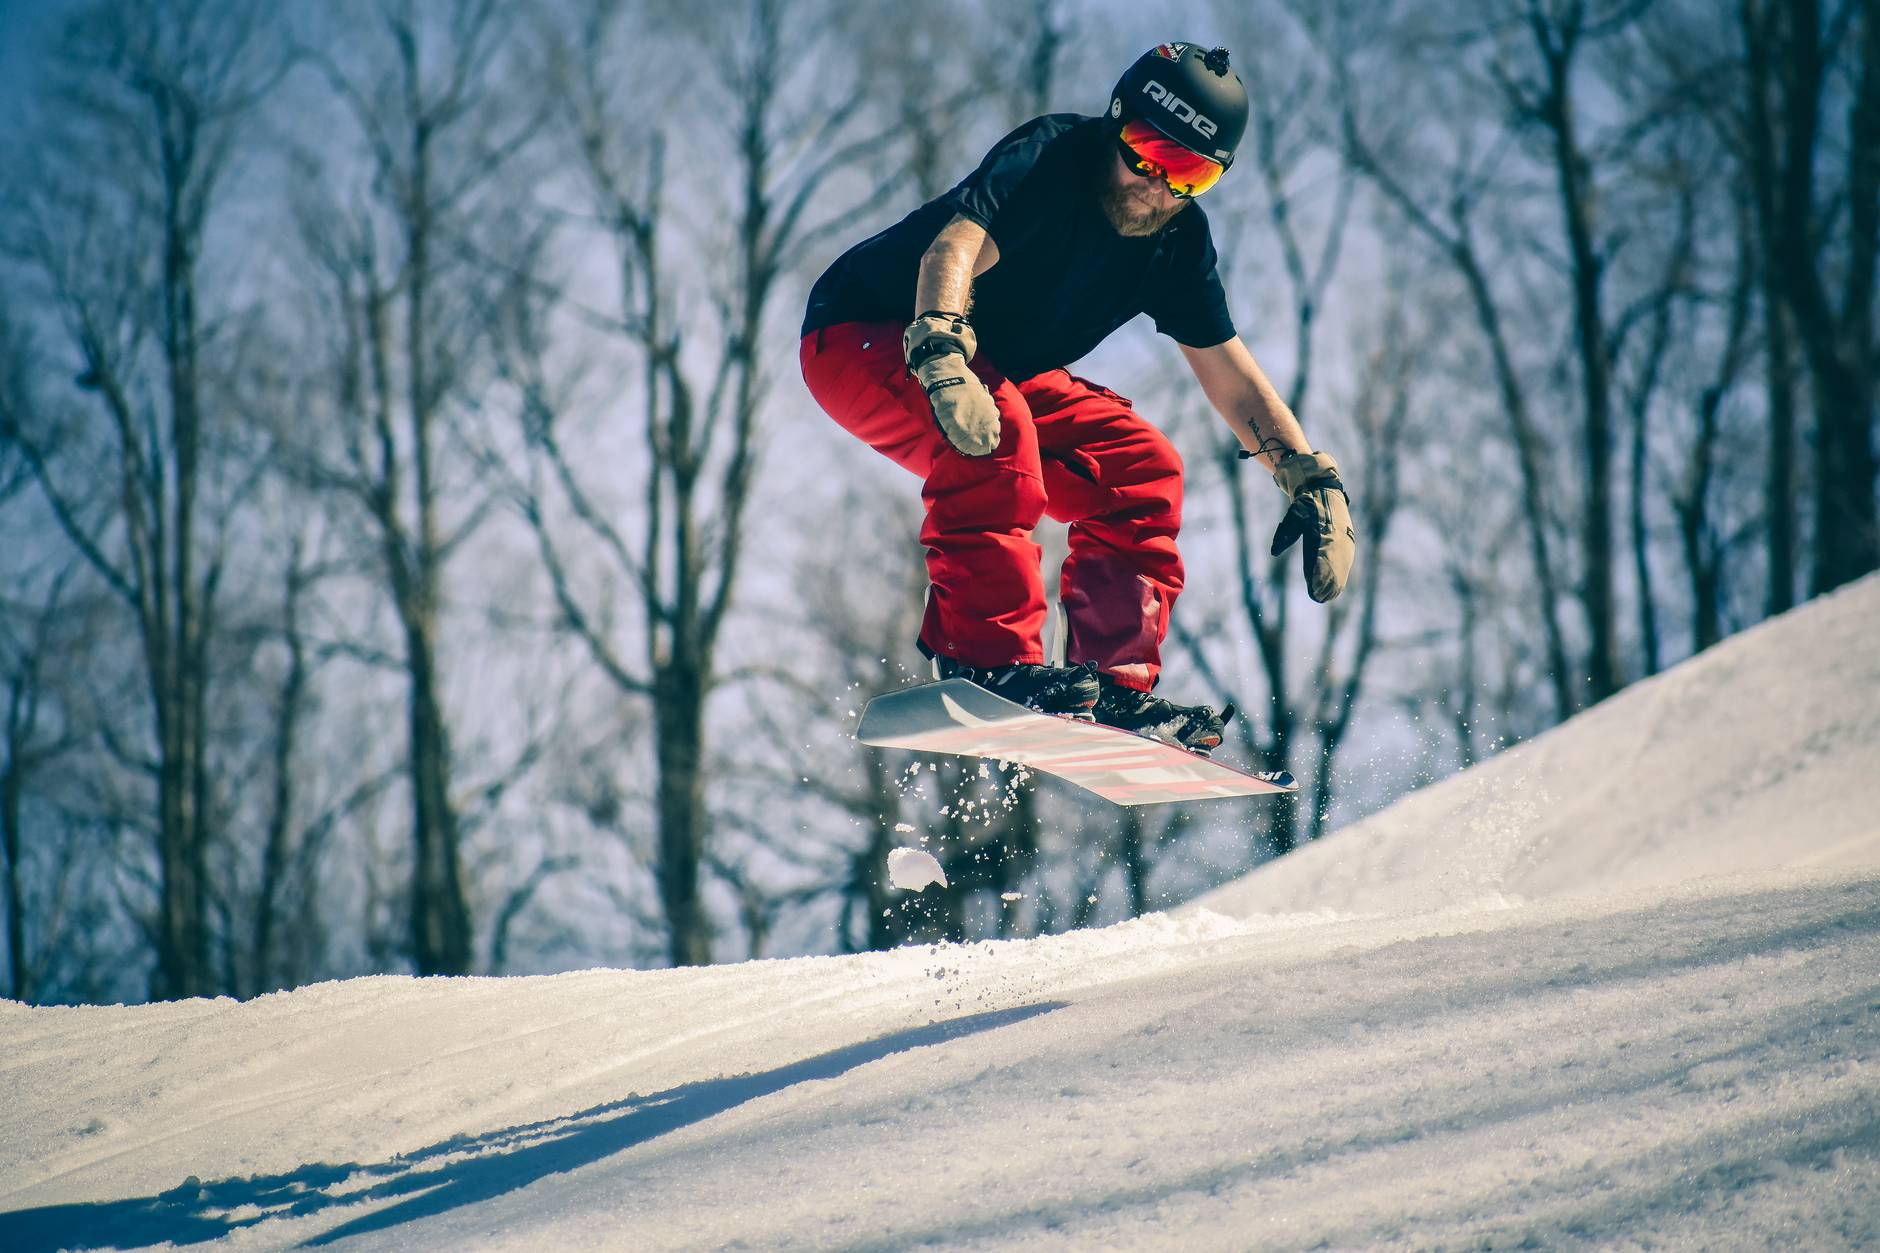 man riding on snowboard in mid air jump